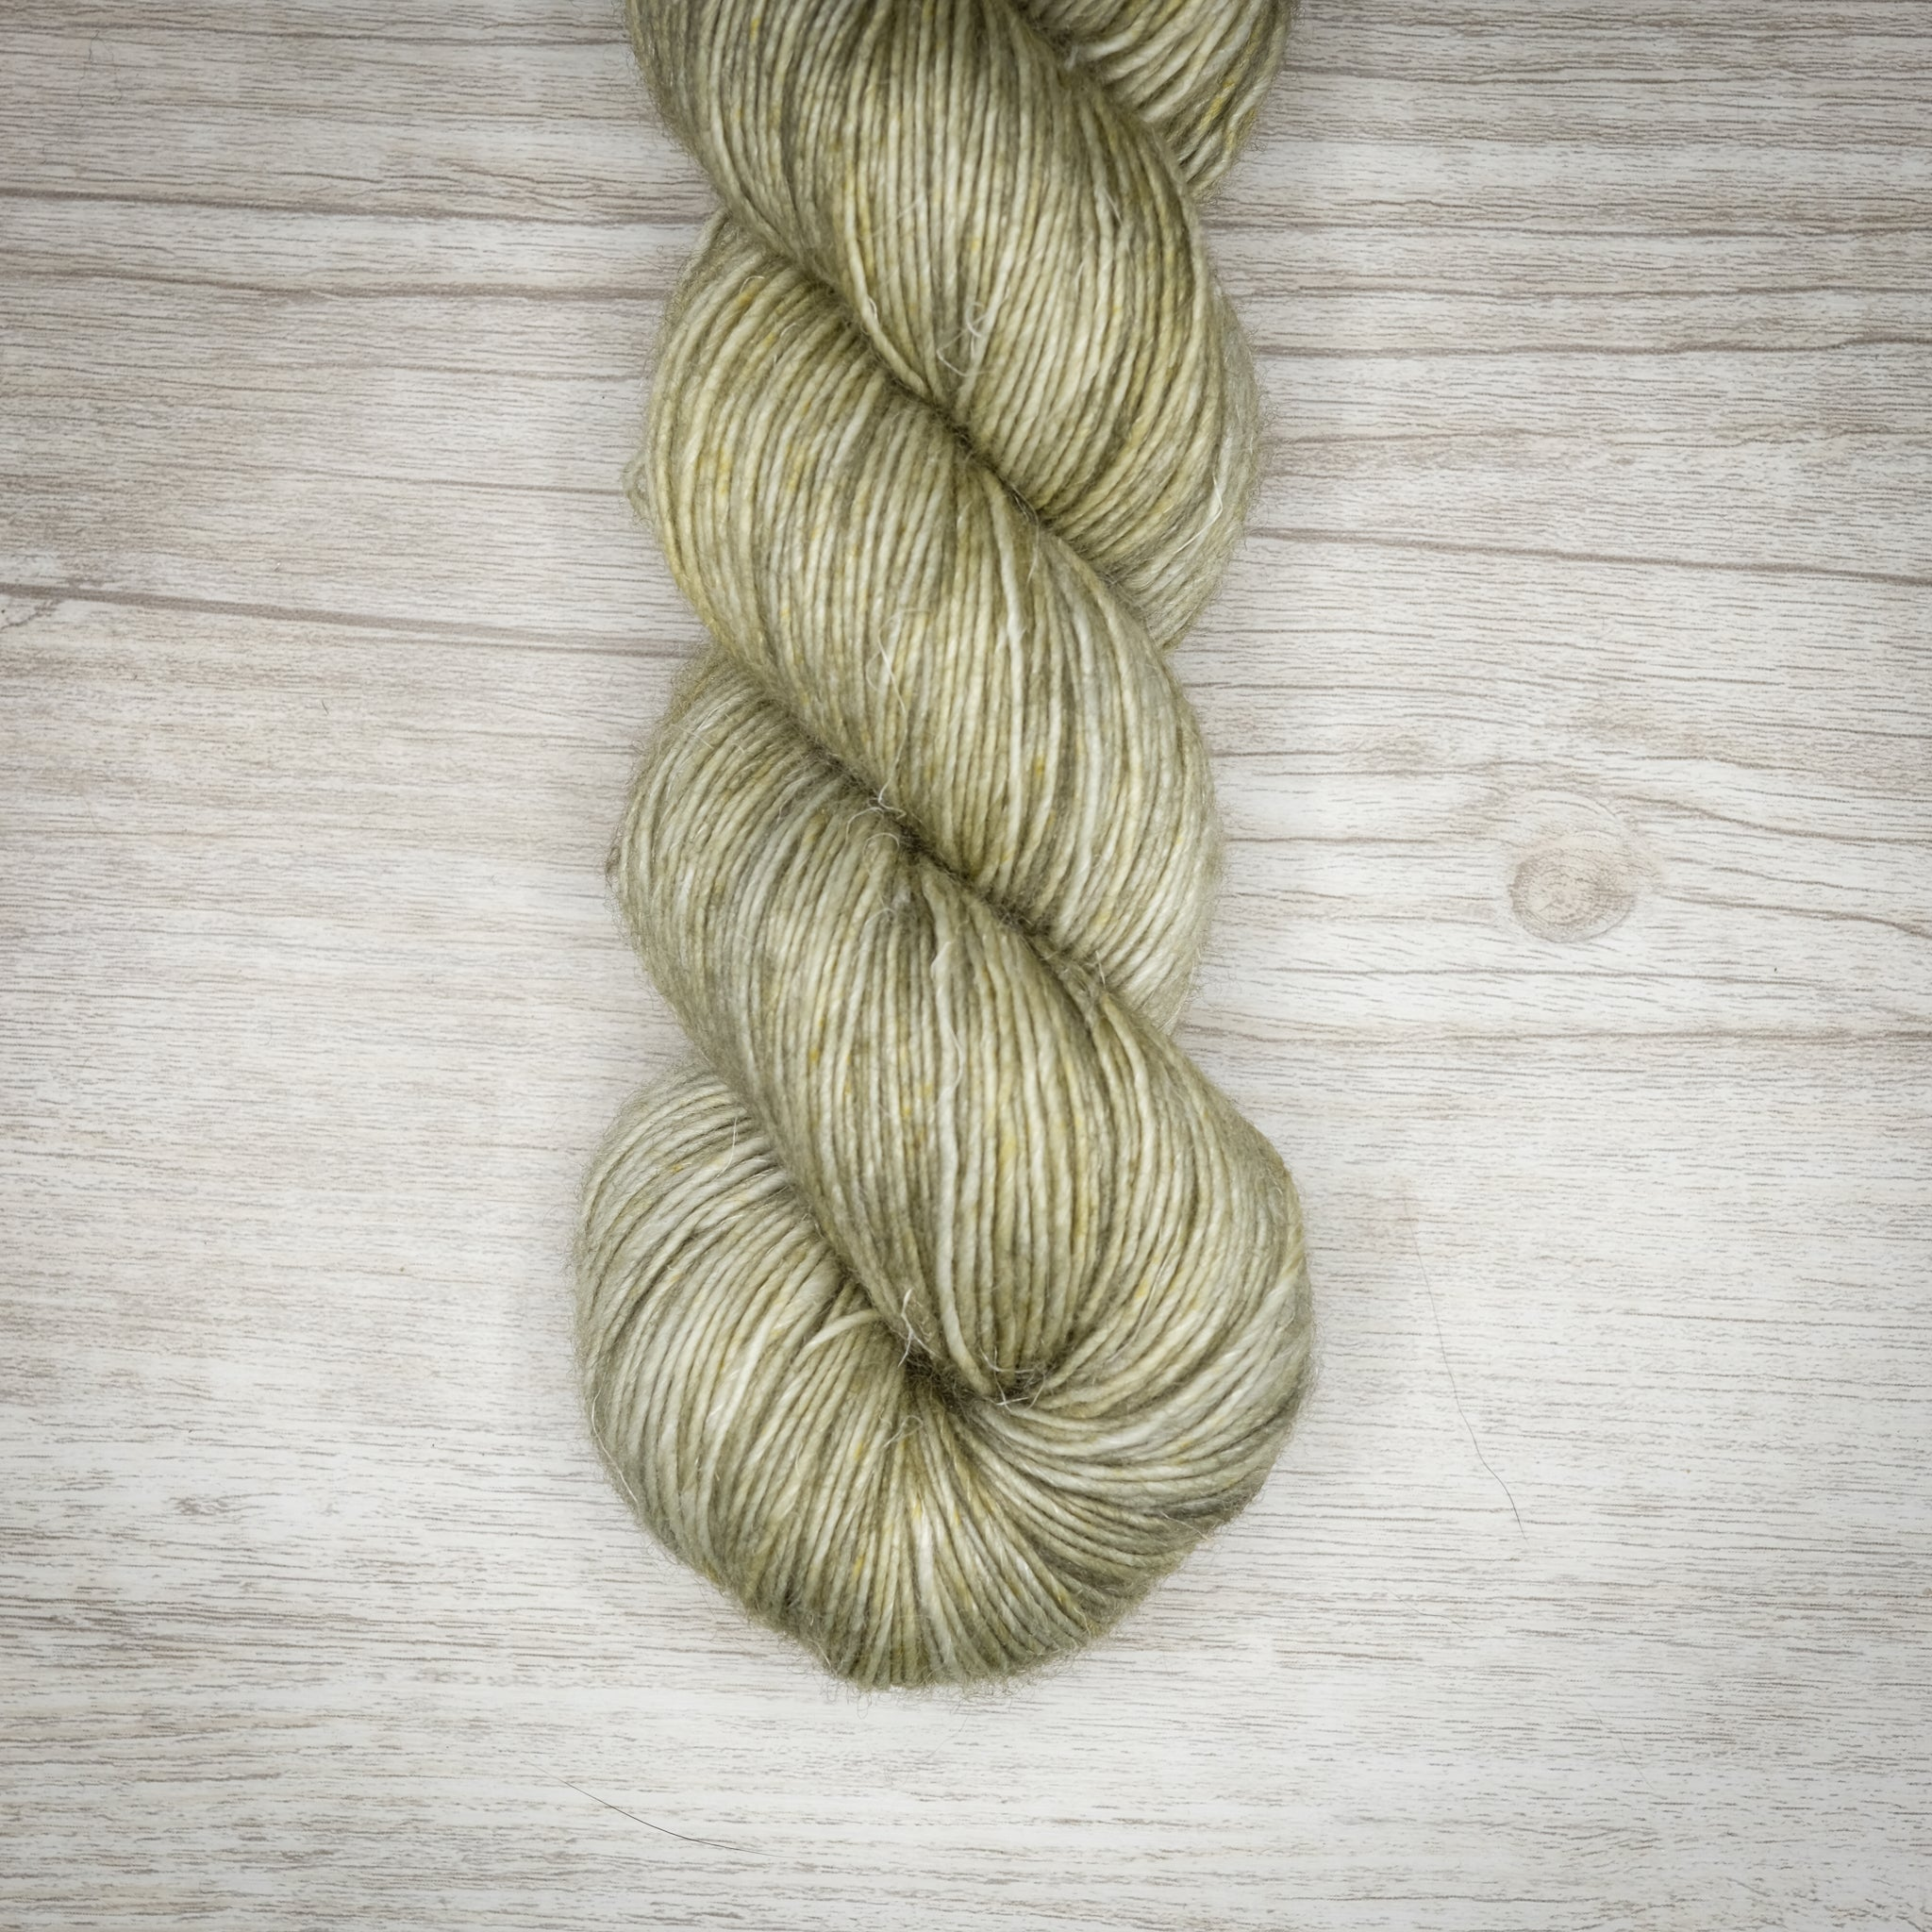 Green Earth - Merino Linen Singles Dyed to Order